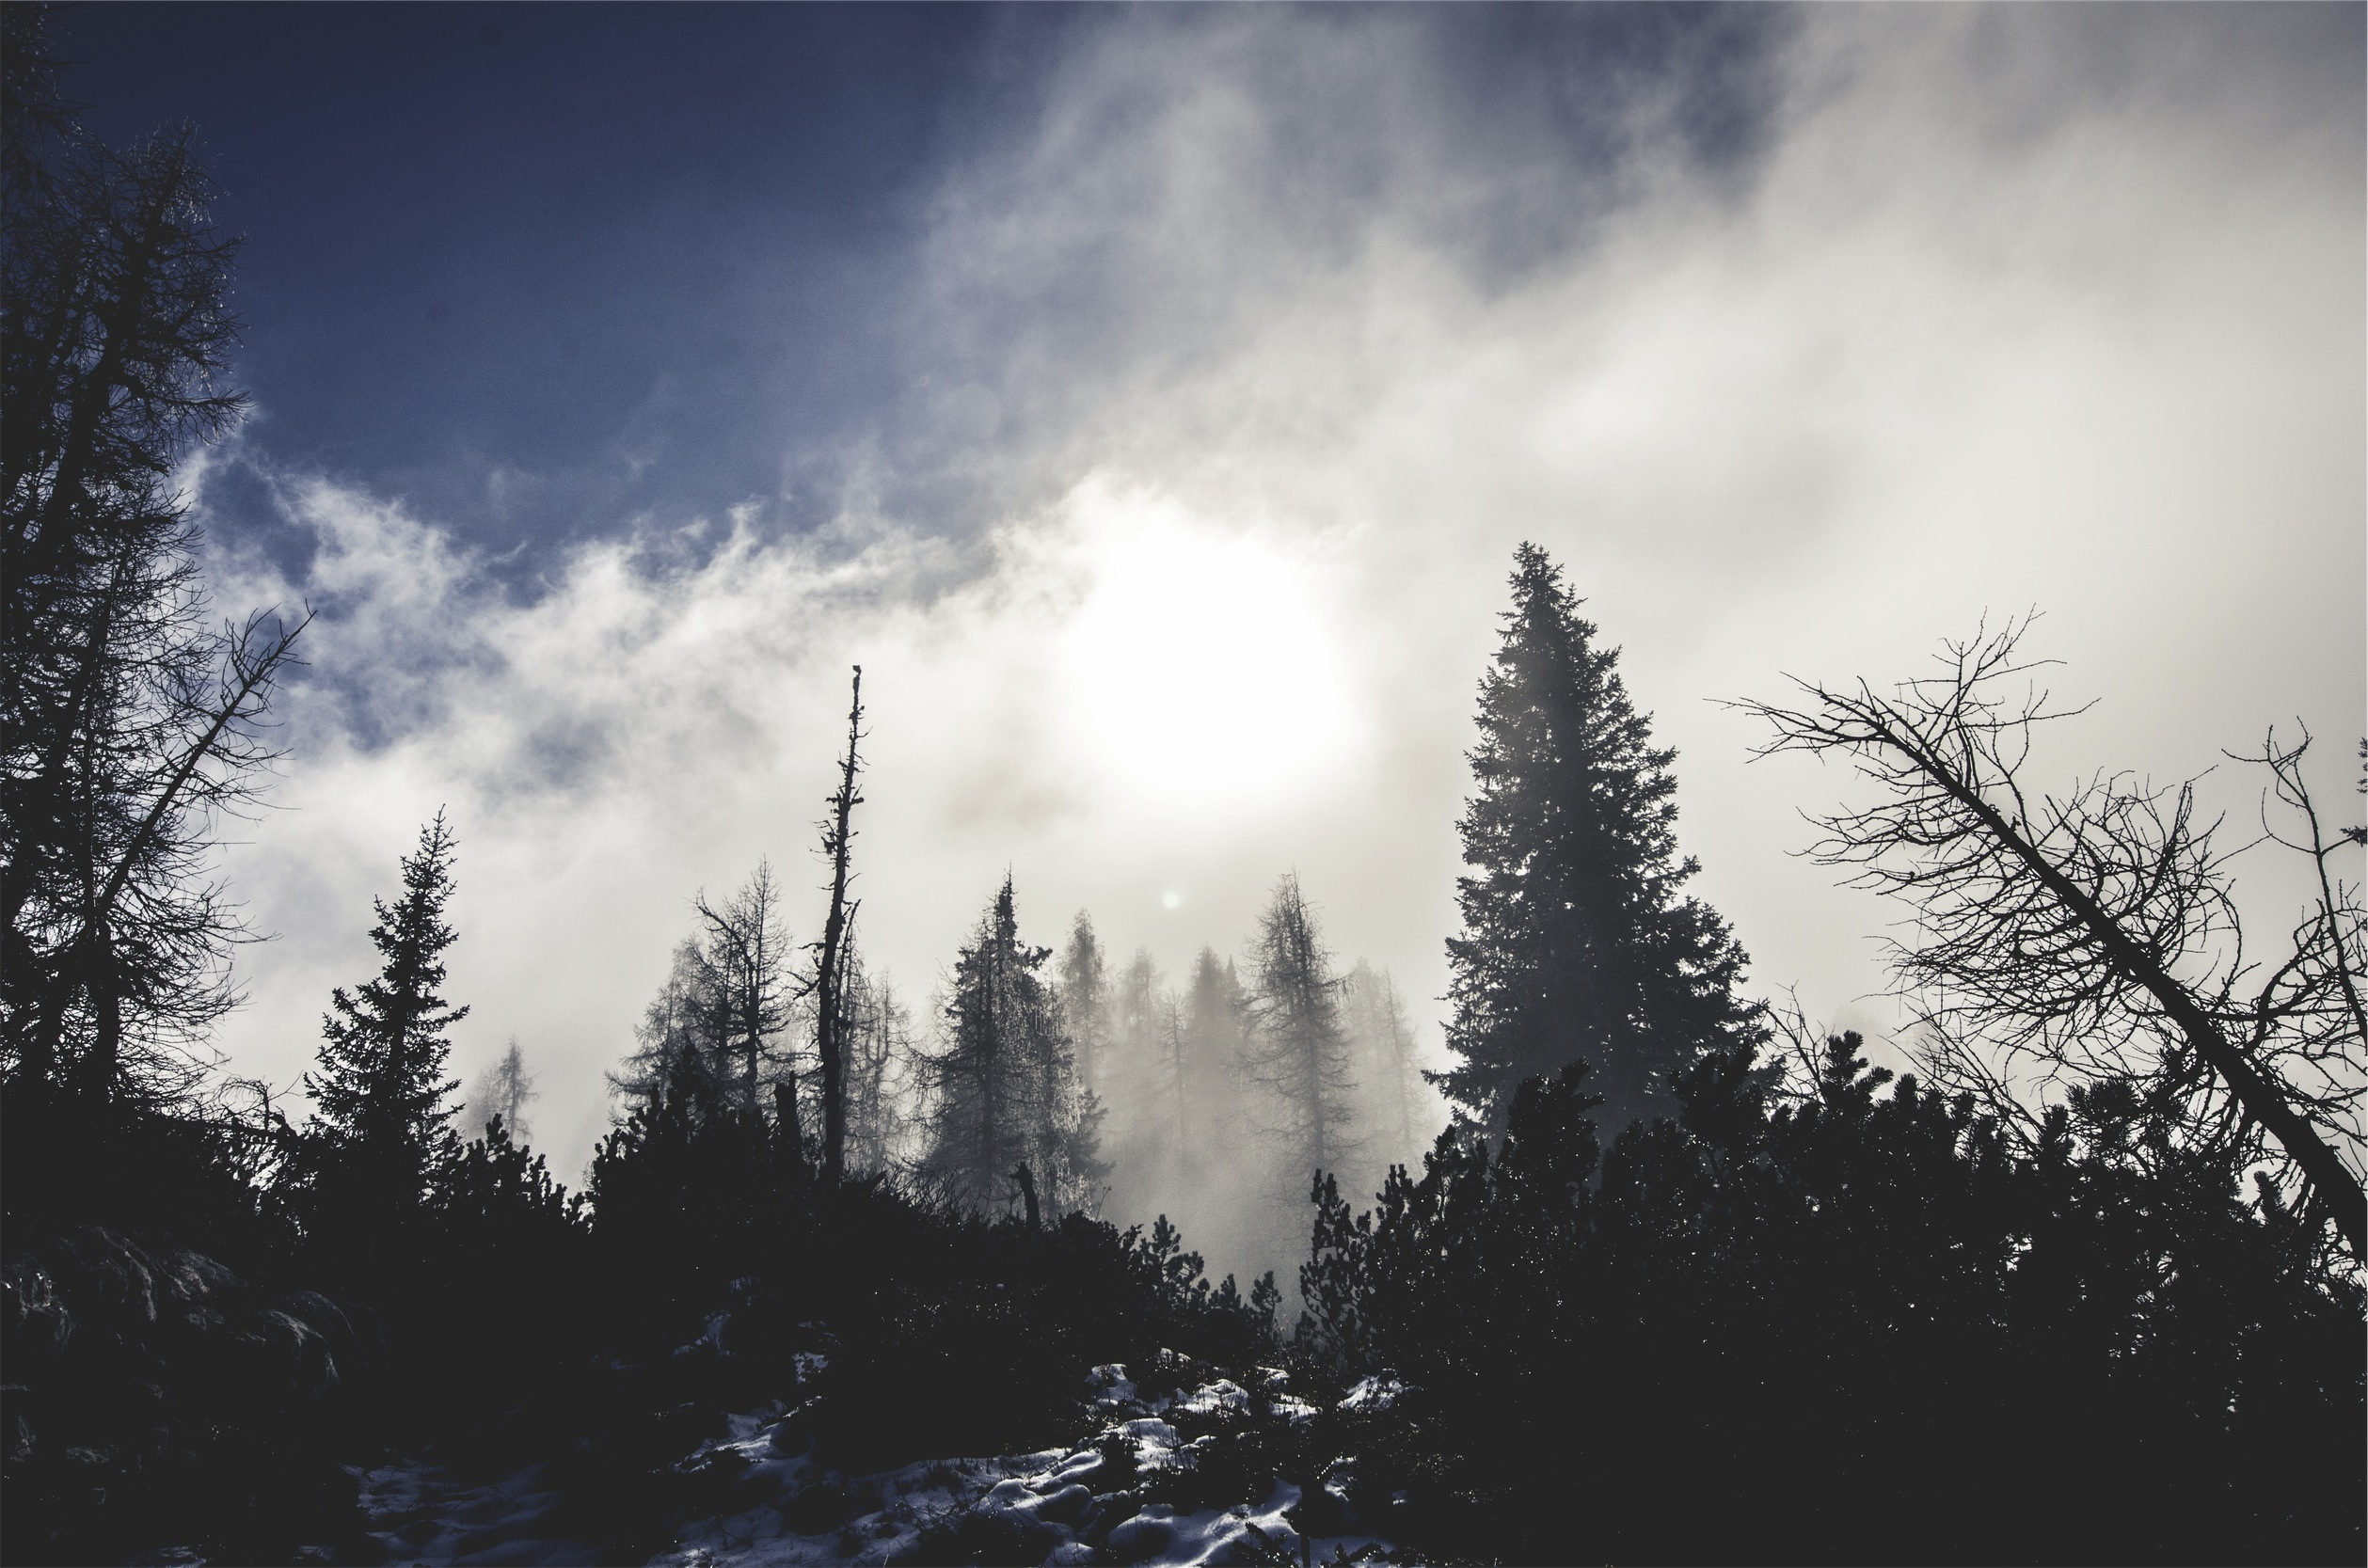 Invest forest, pine trees, snow, cold, fog, snow covered trees